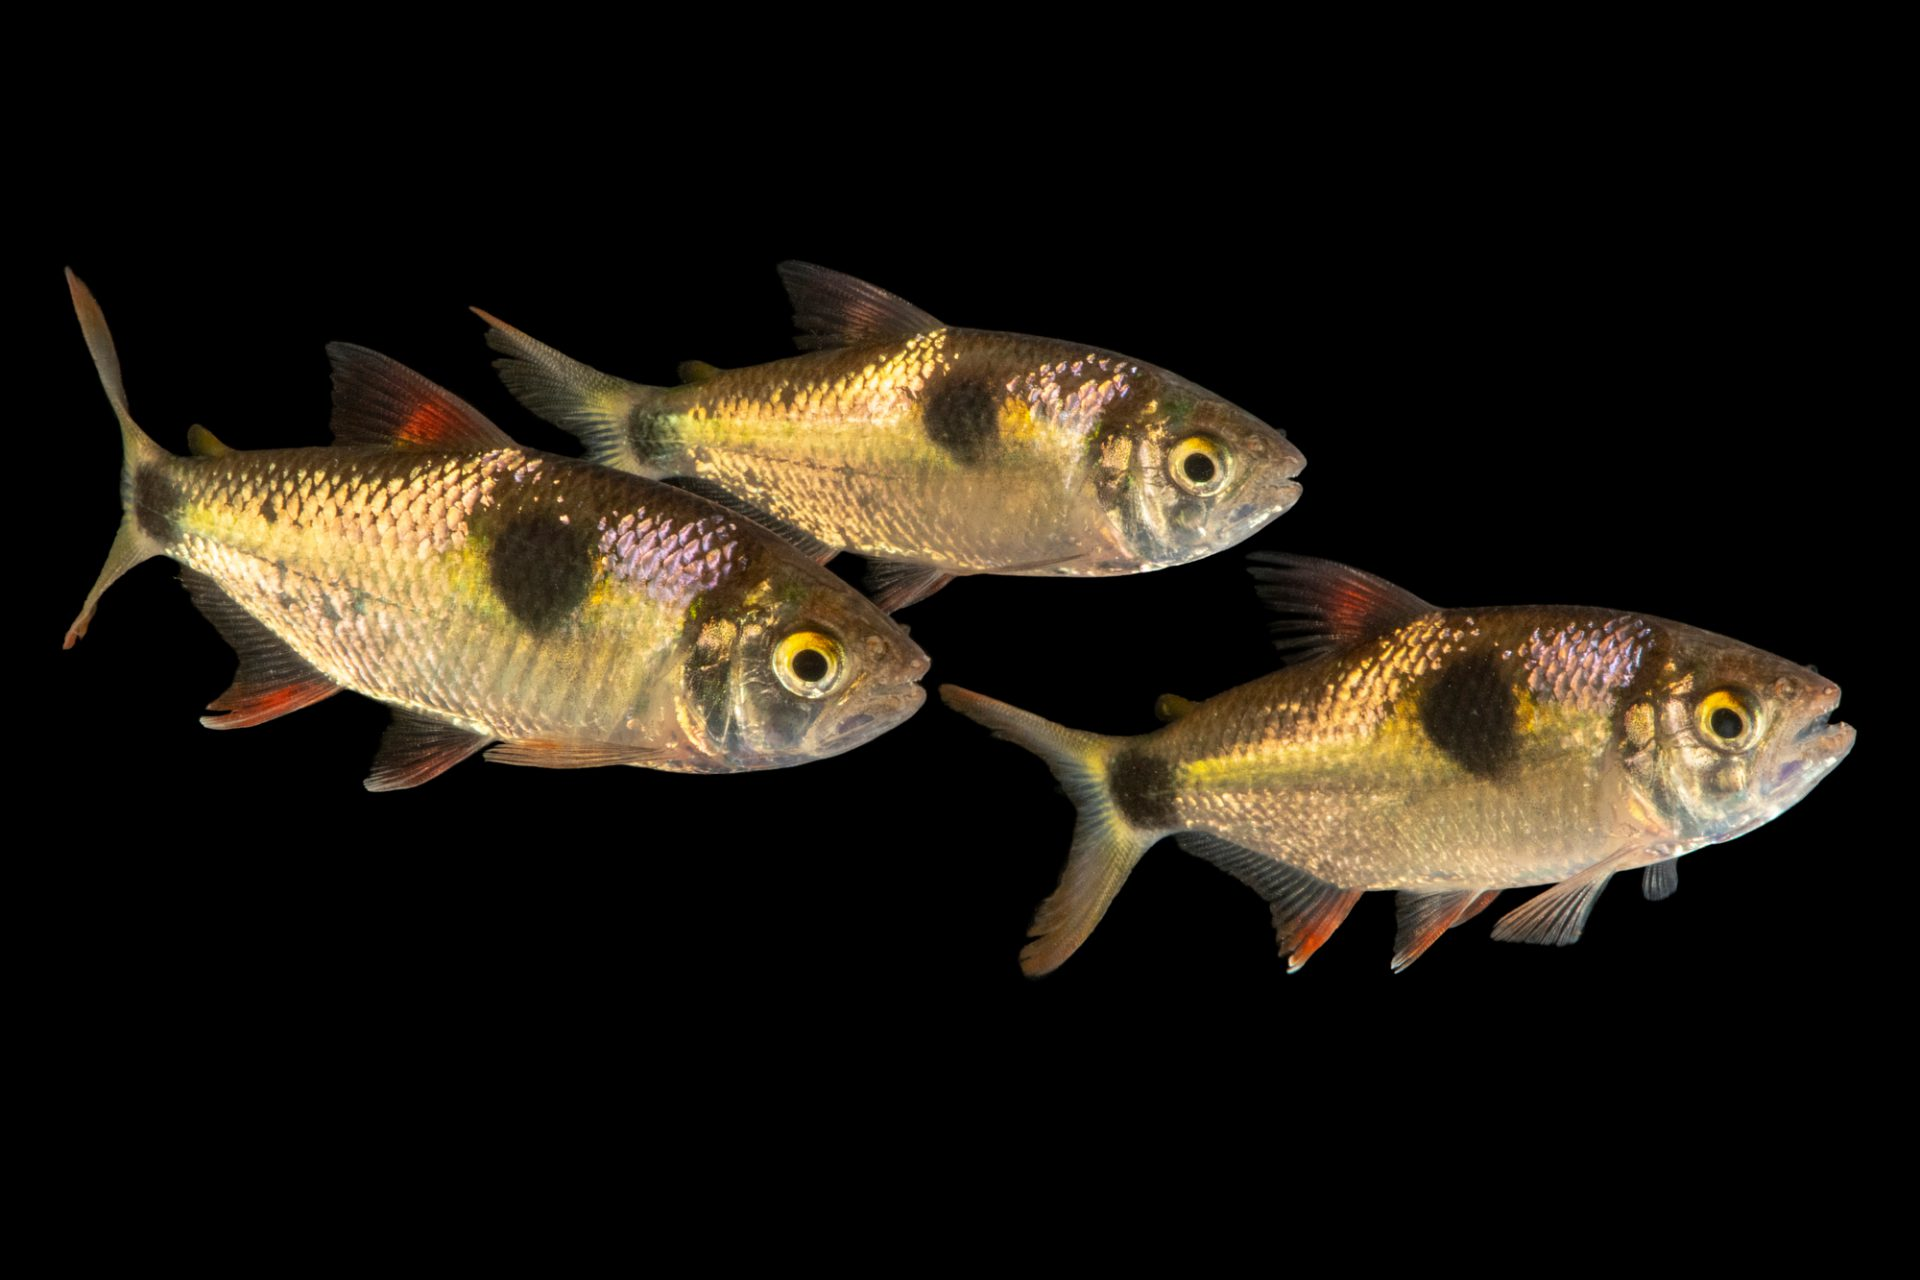 Photo: Bucktooth tetra (Exodon paradoxus) at Faunia in Madrid, Spain.